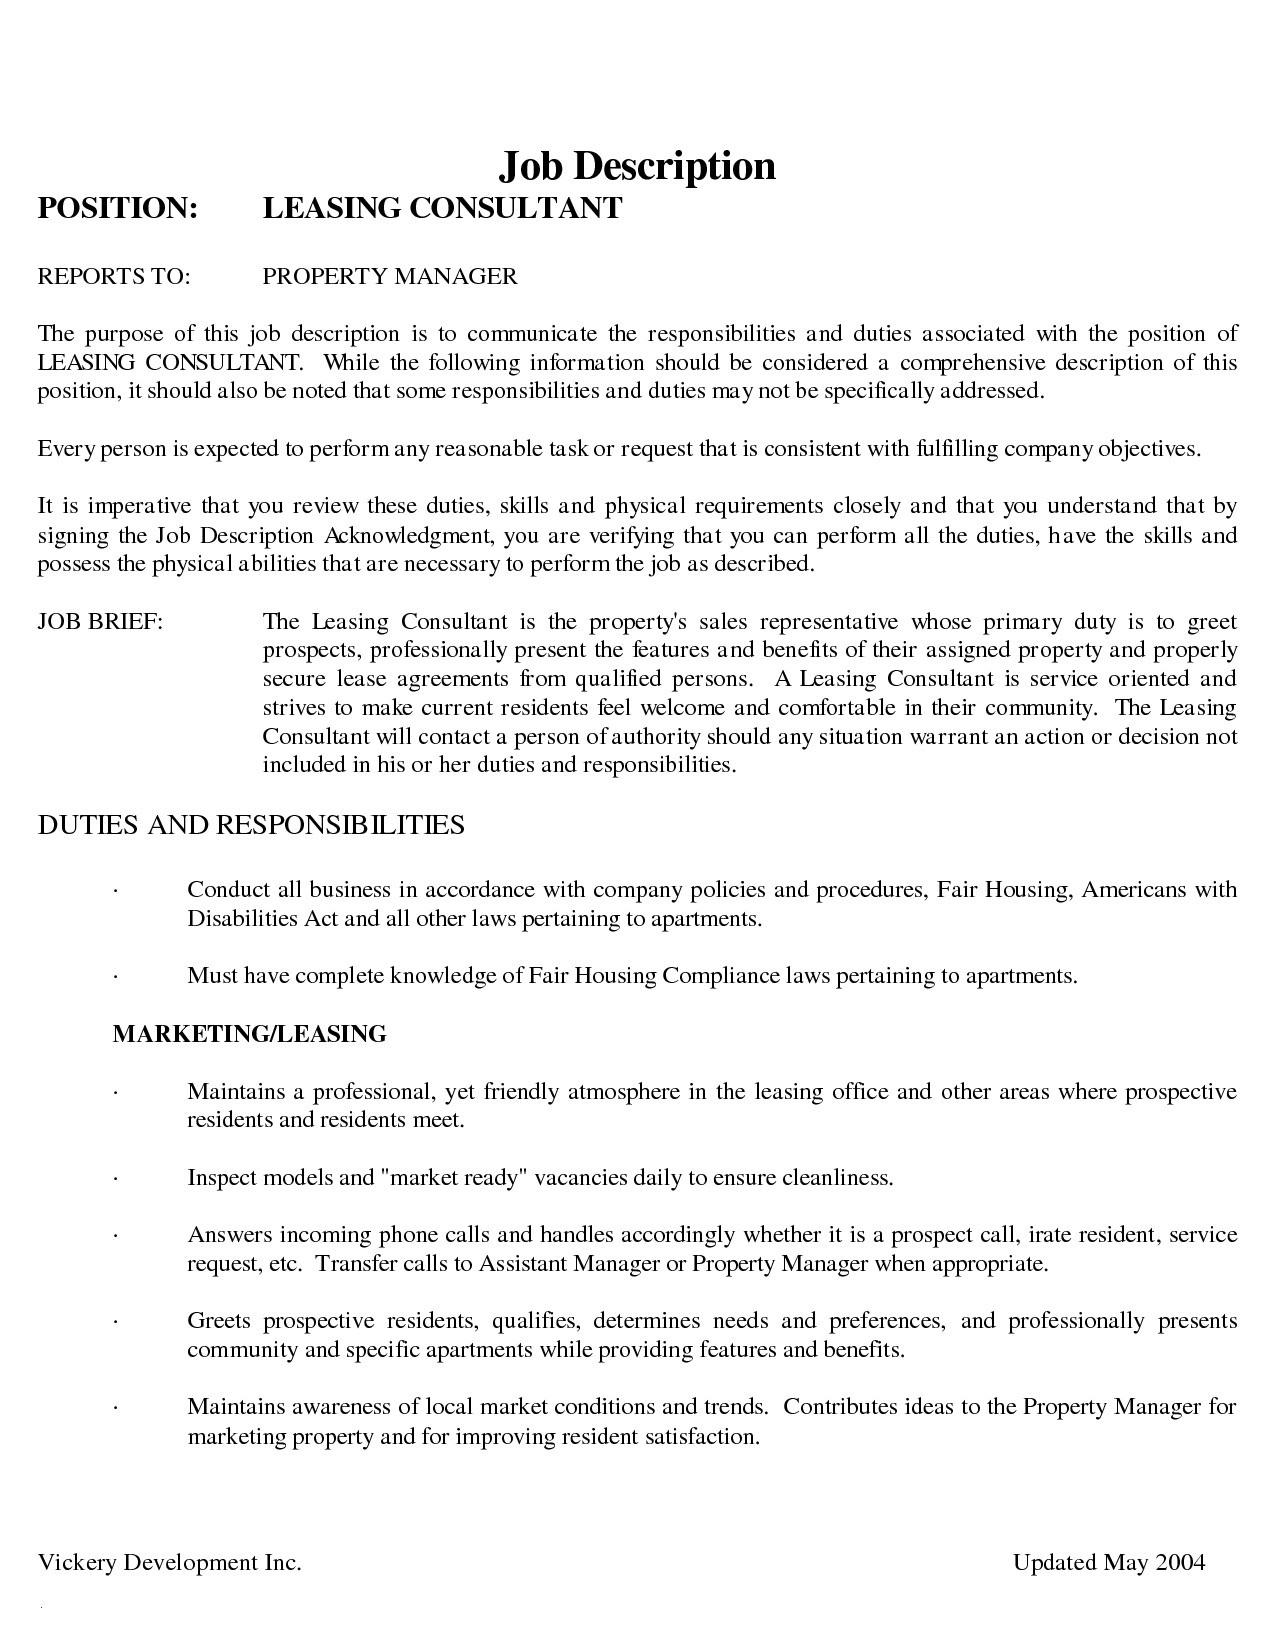 Leasing Consultant Resume - Apartment Leasing Consultant Resume Popular Leasing Consultant